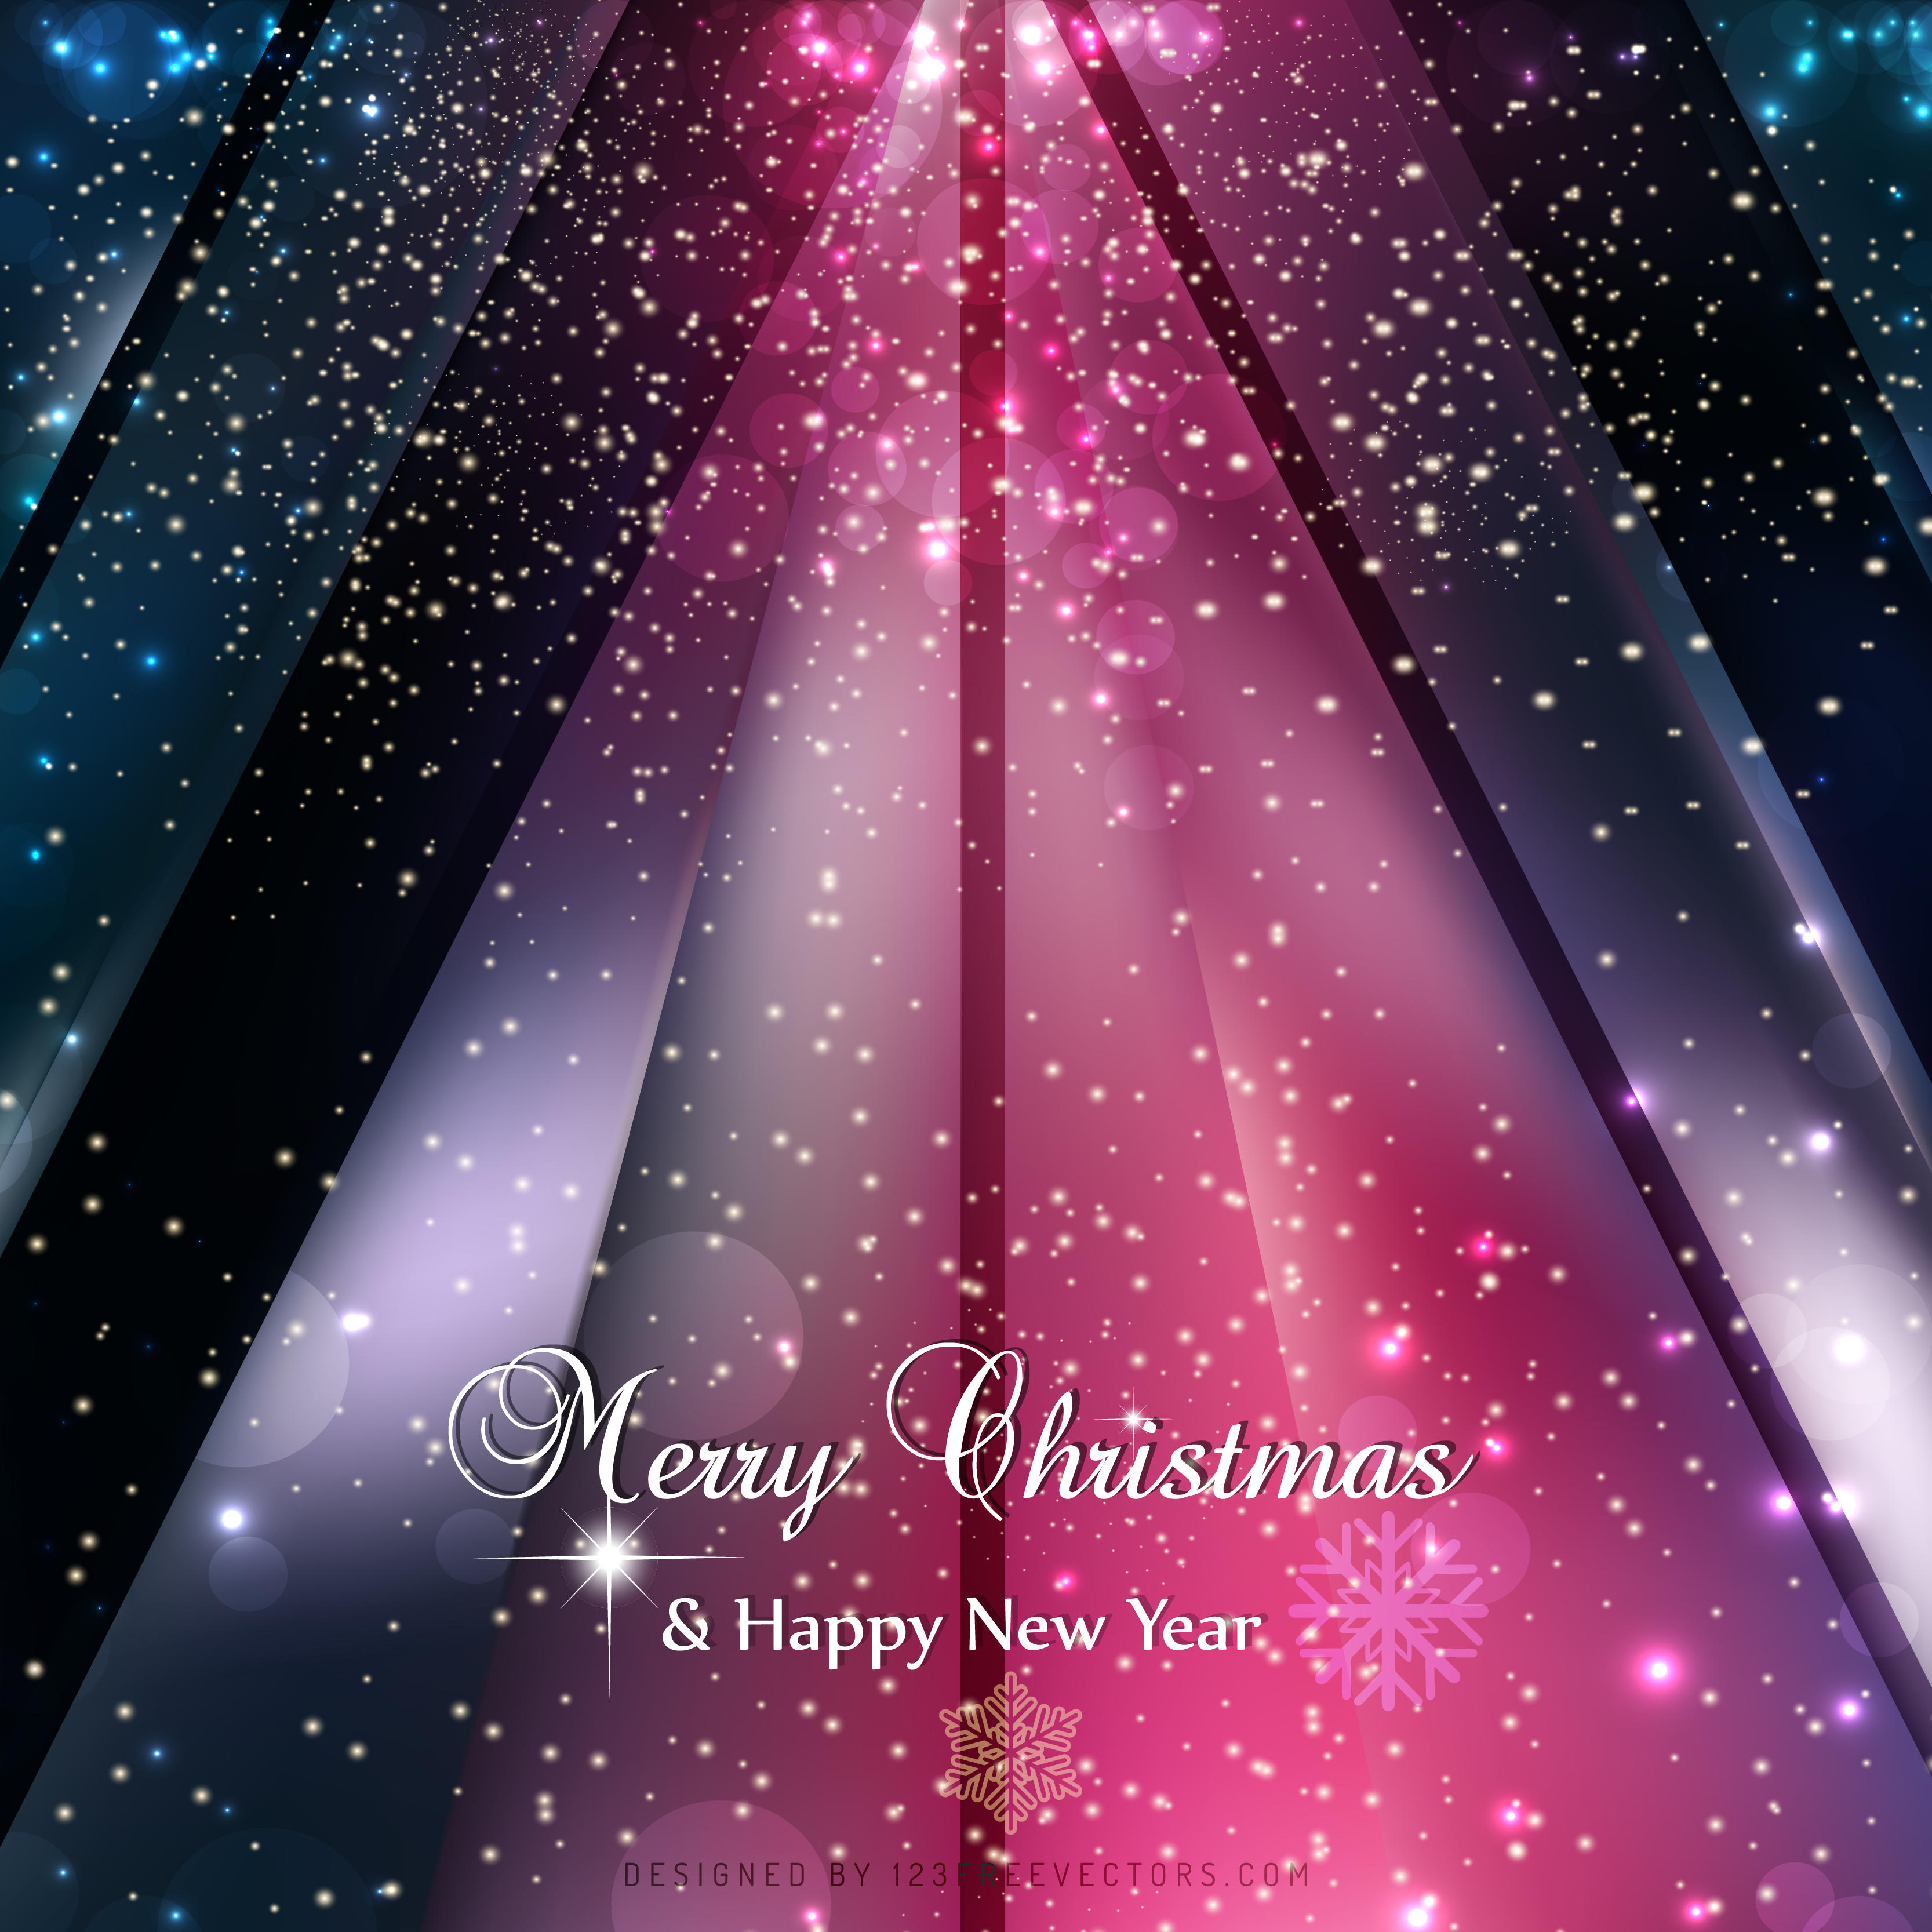 Merry Christmas and Happy New Year Dark Color Background     Merry Christmas and Happy New Year Dark Color Background   123Freevectors